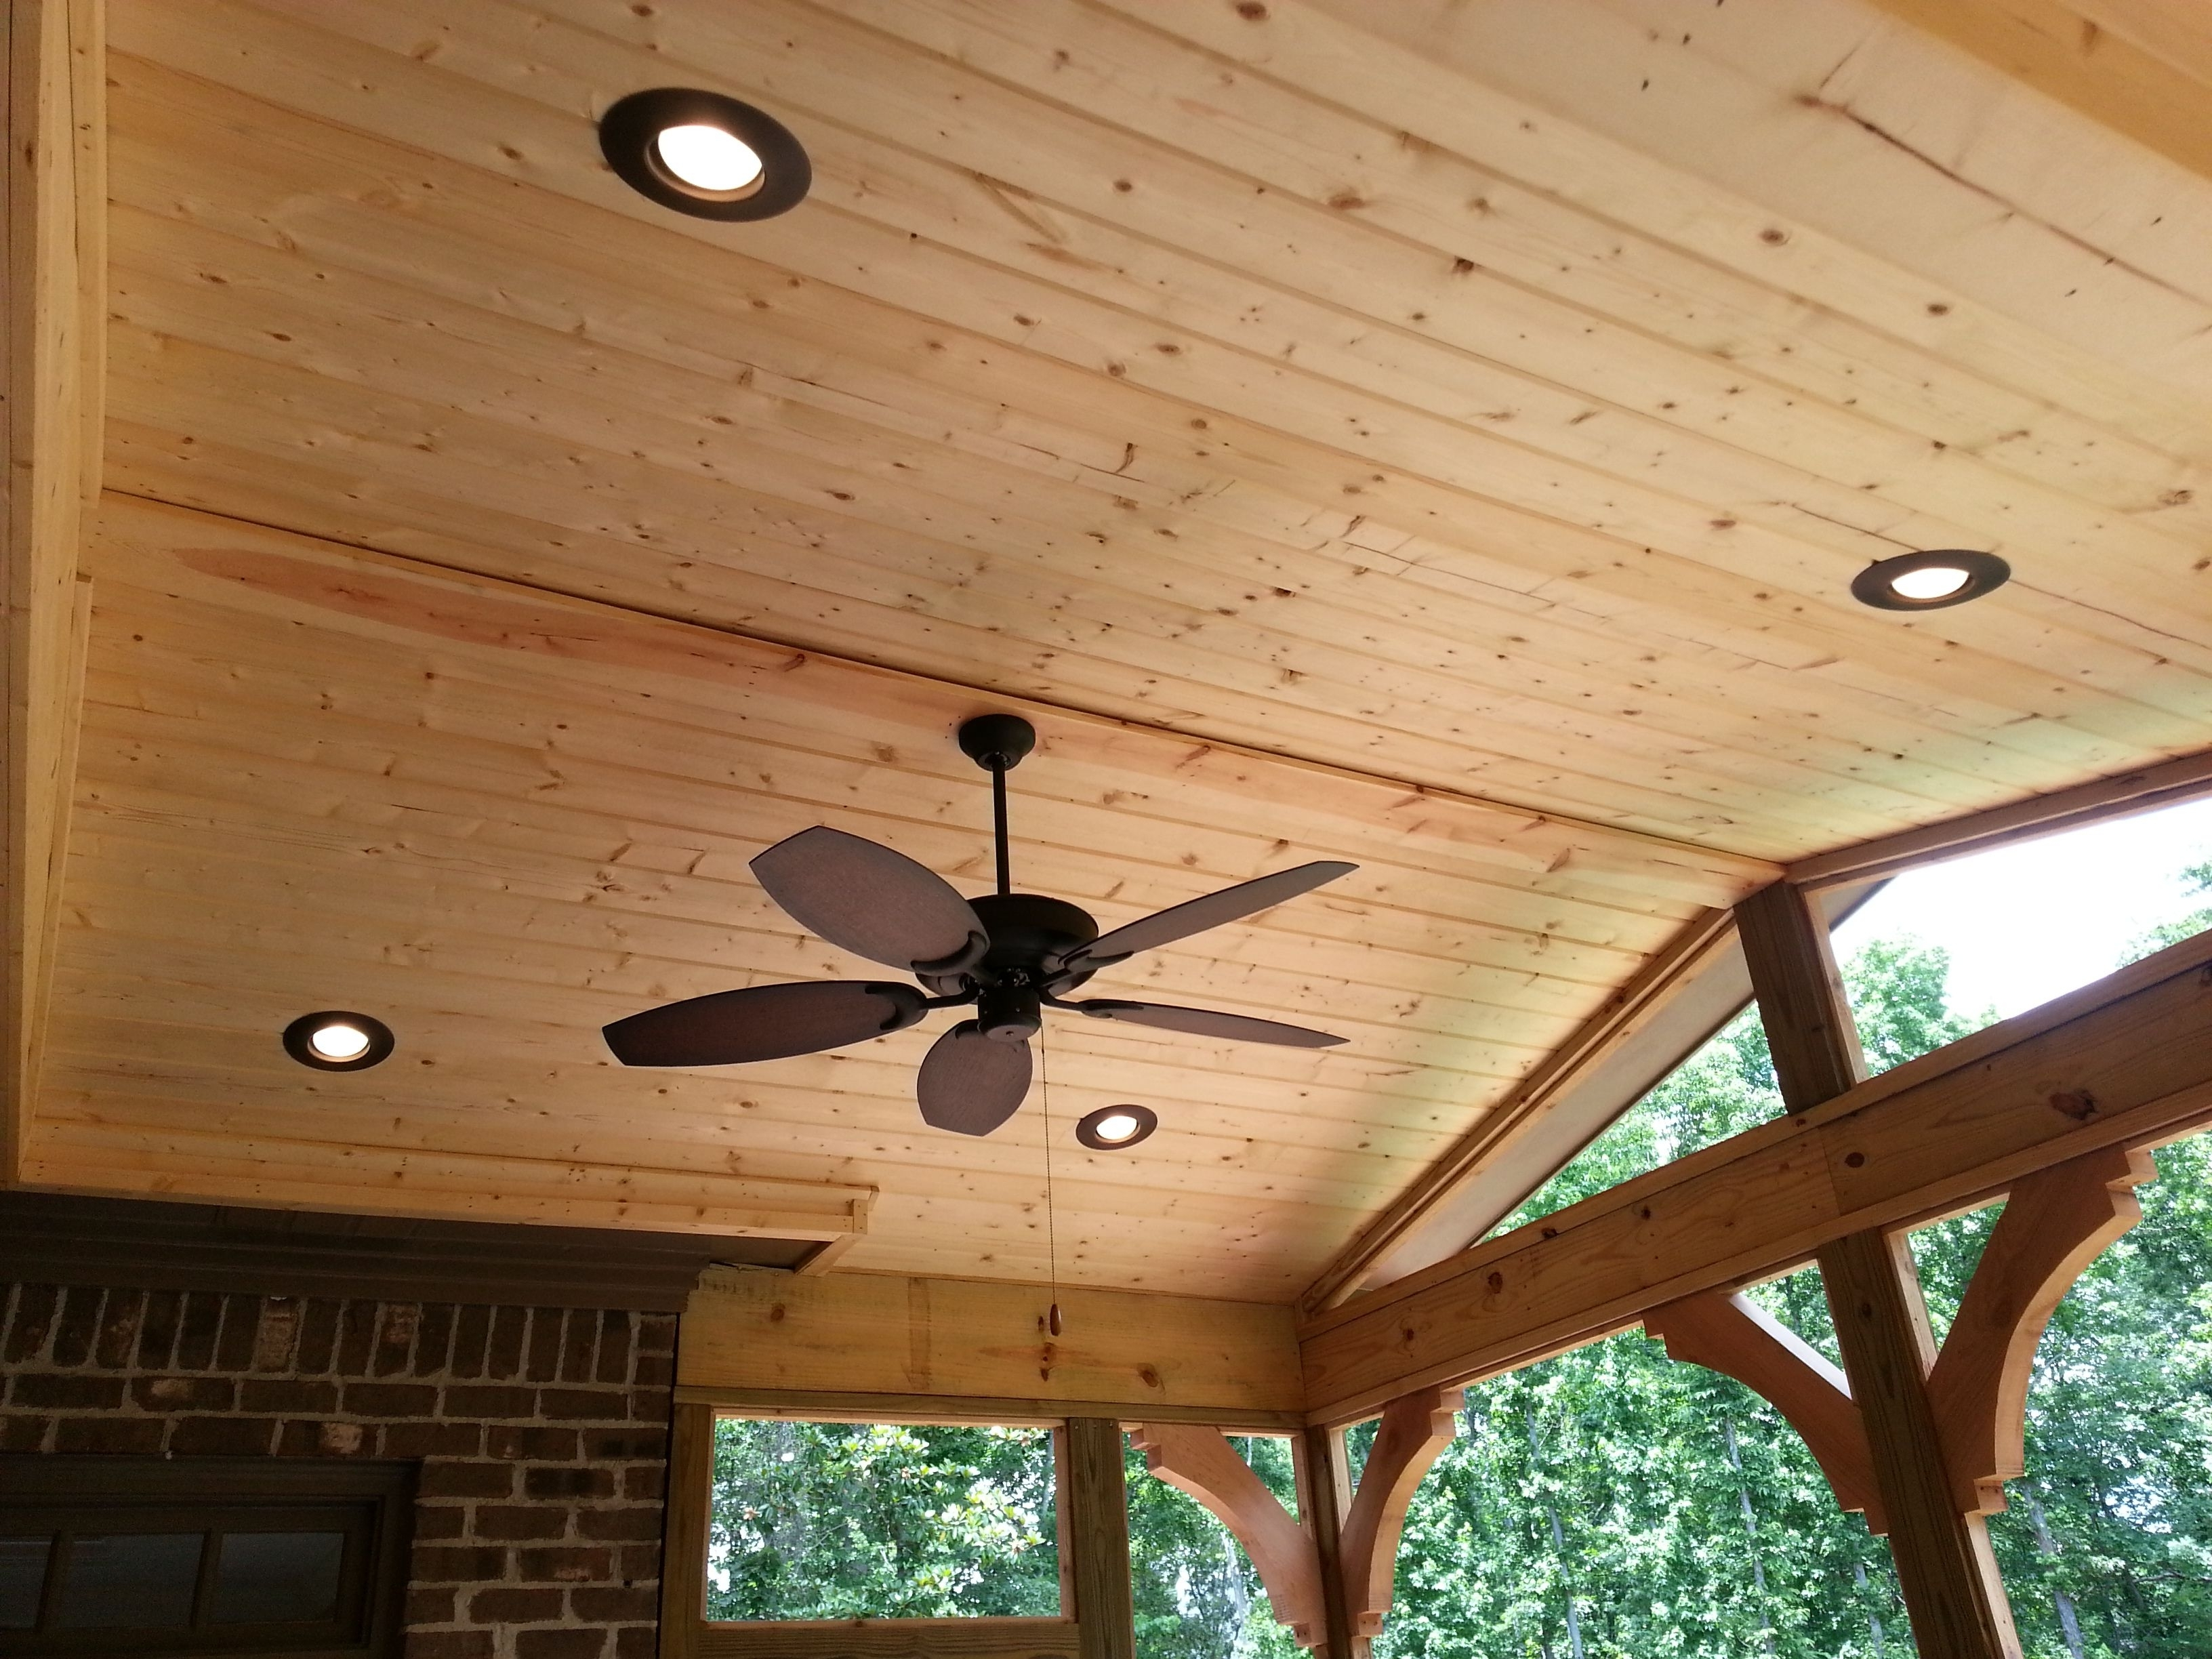 Latest Outdoor Ceiling Fans For Decks Intended For Finished Ceiling With Ceiling Fan And Can Lights – Design Ideas (View 4 of 20)